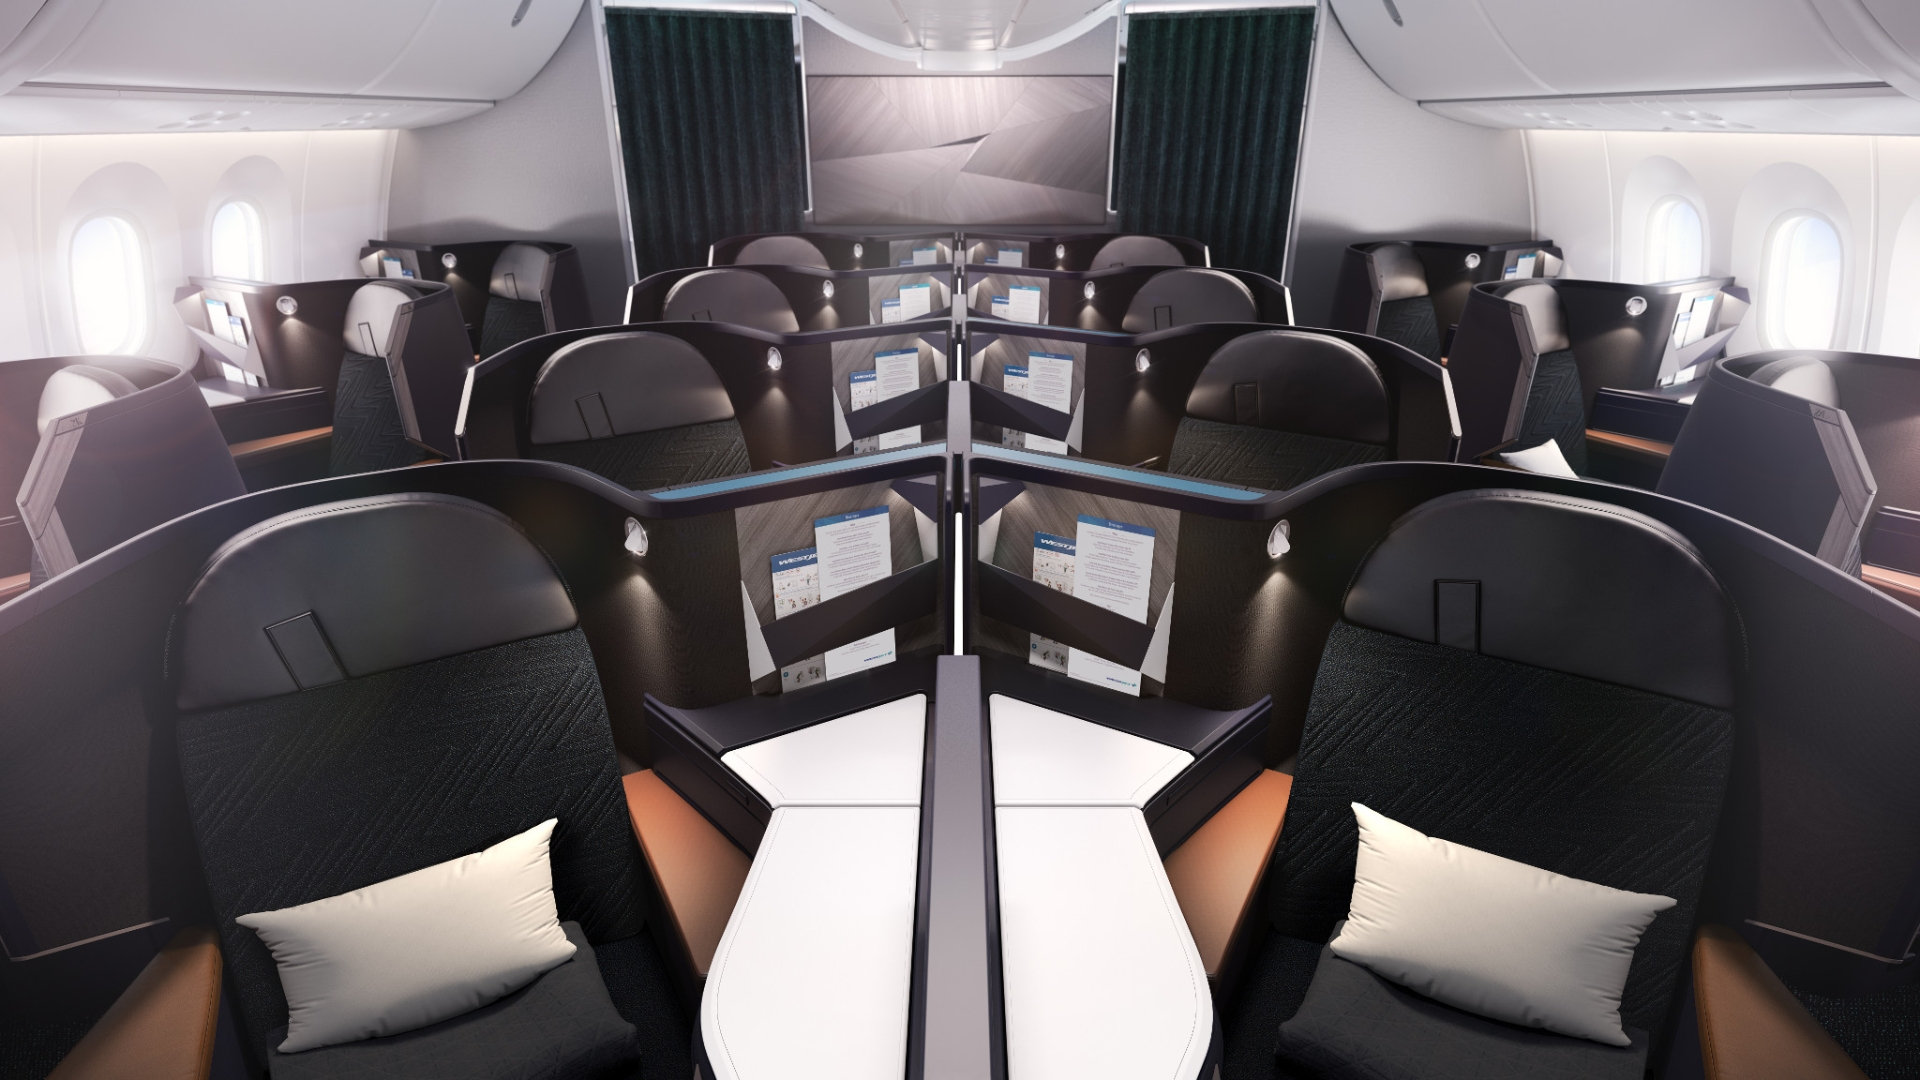 WestJet's new Dreamliner Business cabin features all-aisle-access and lie-flat seats. Photo: WestJet